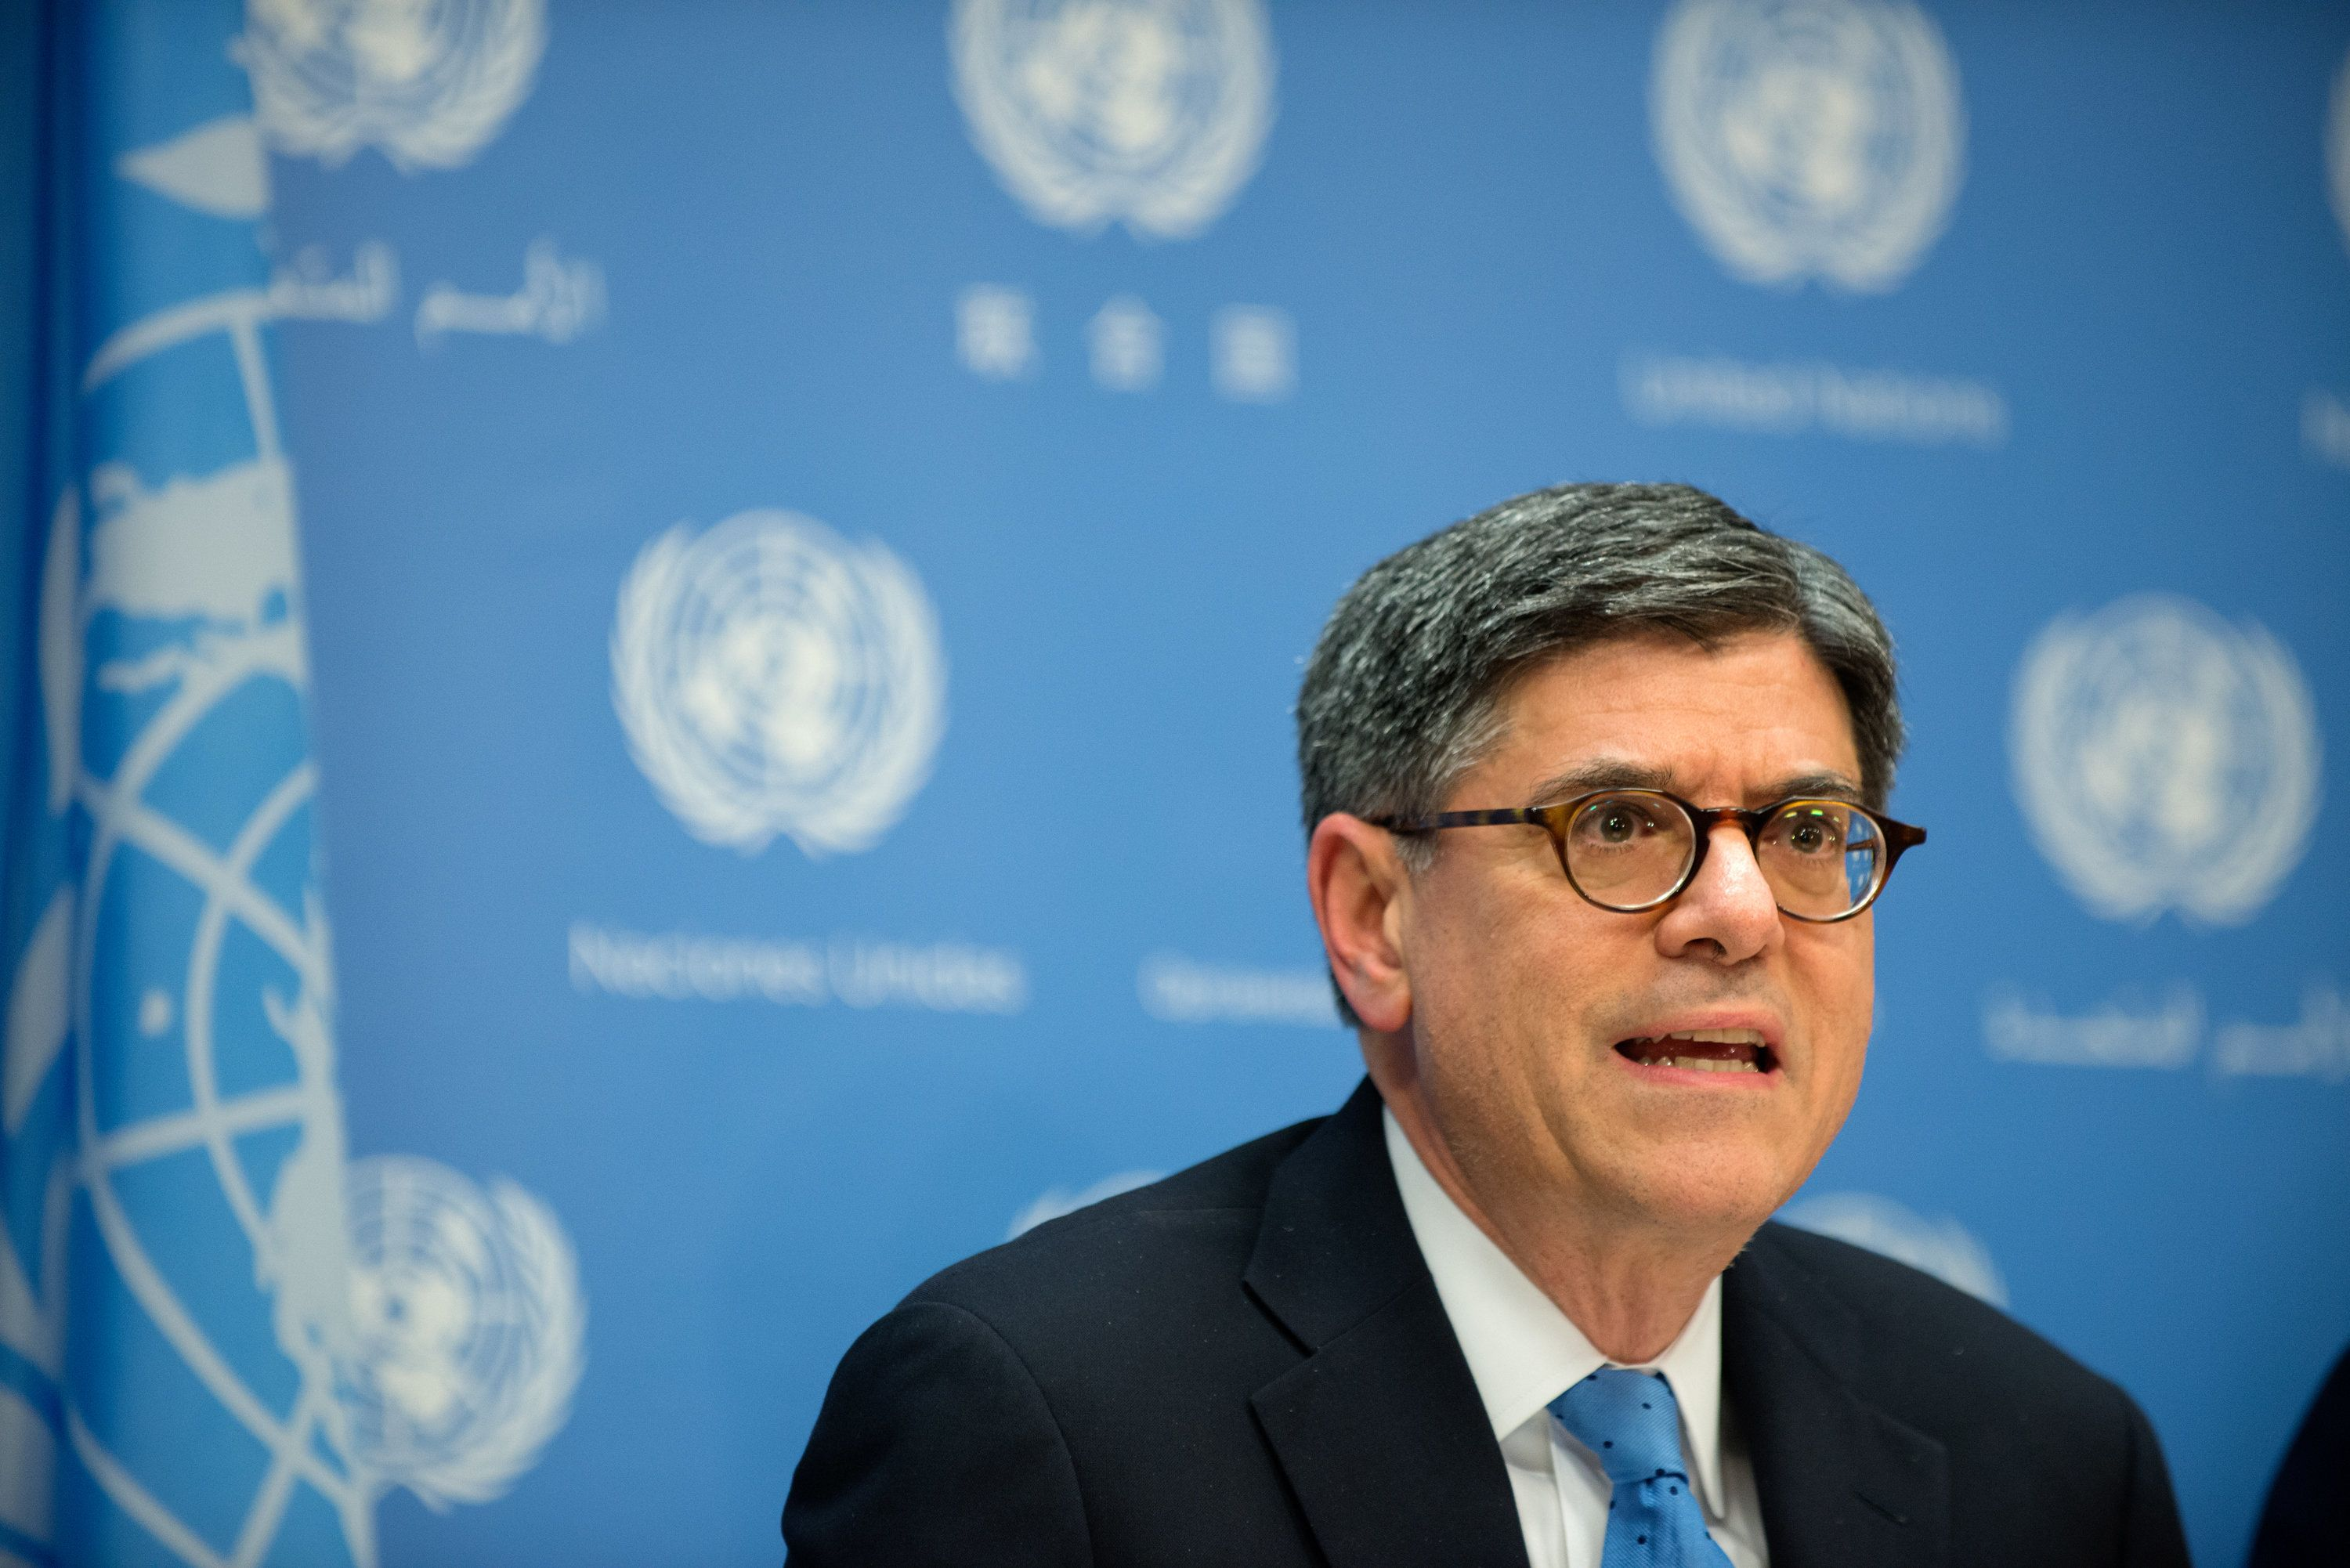 NEW YORK, NY - DECEMBER 17: United States Treasury Secretary Jacob Lew speaks during a press conference following the United Nations Security Council's session to discuss the financing of terrorism on December 17, 2015 in New York City. Finance members from the permanent members of the security council, as well as the other ten, non-permanent, members of the security council discussed how to combat terrorism financing, in particular ISIL.  (Photo by Bryan Thomas/Getty Images)